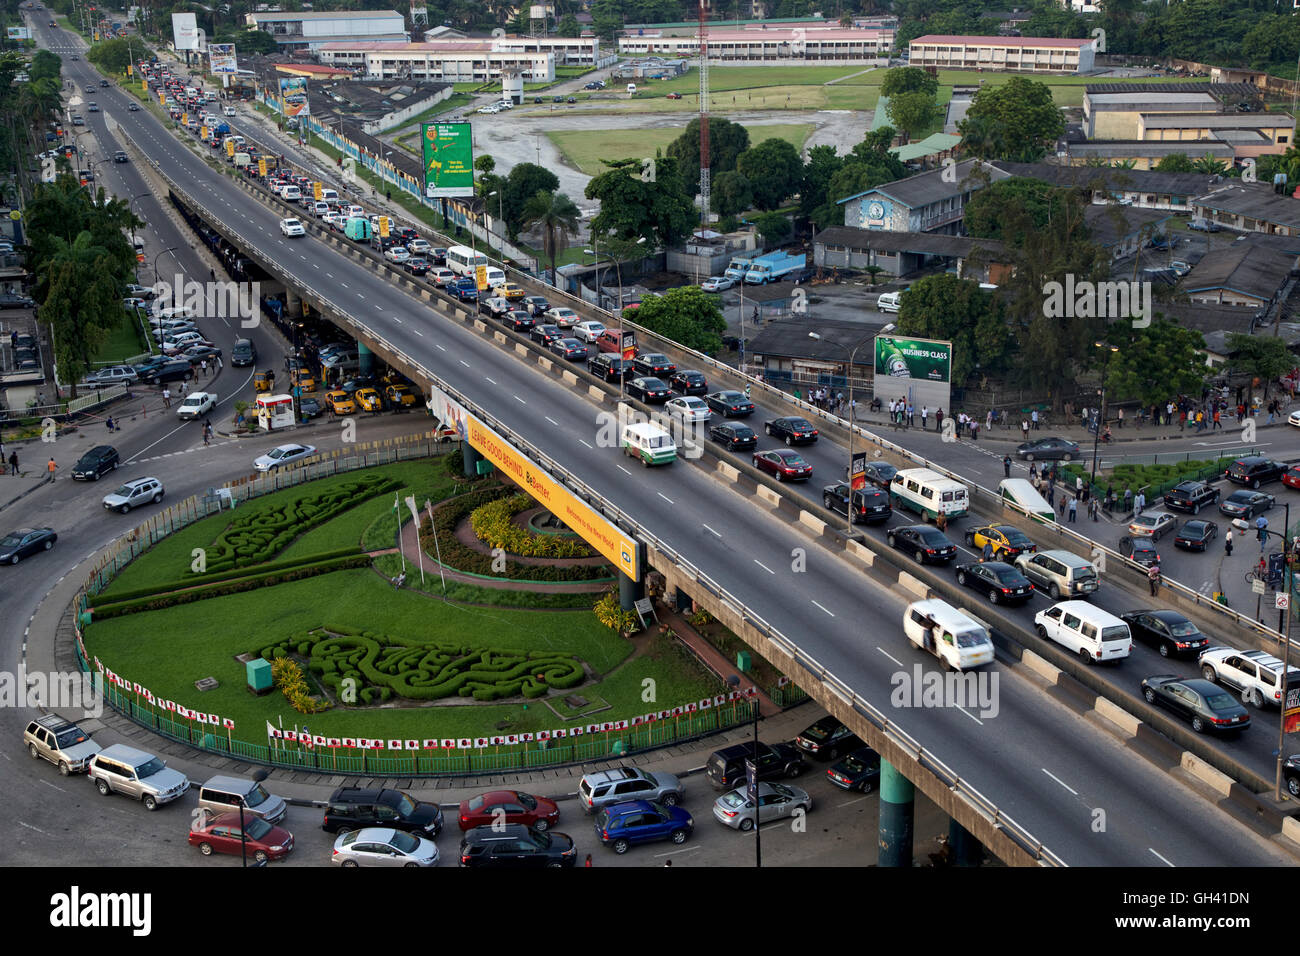 Lagos vehicular traffic at close of day's business - Stock Image